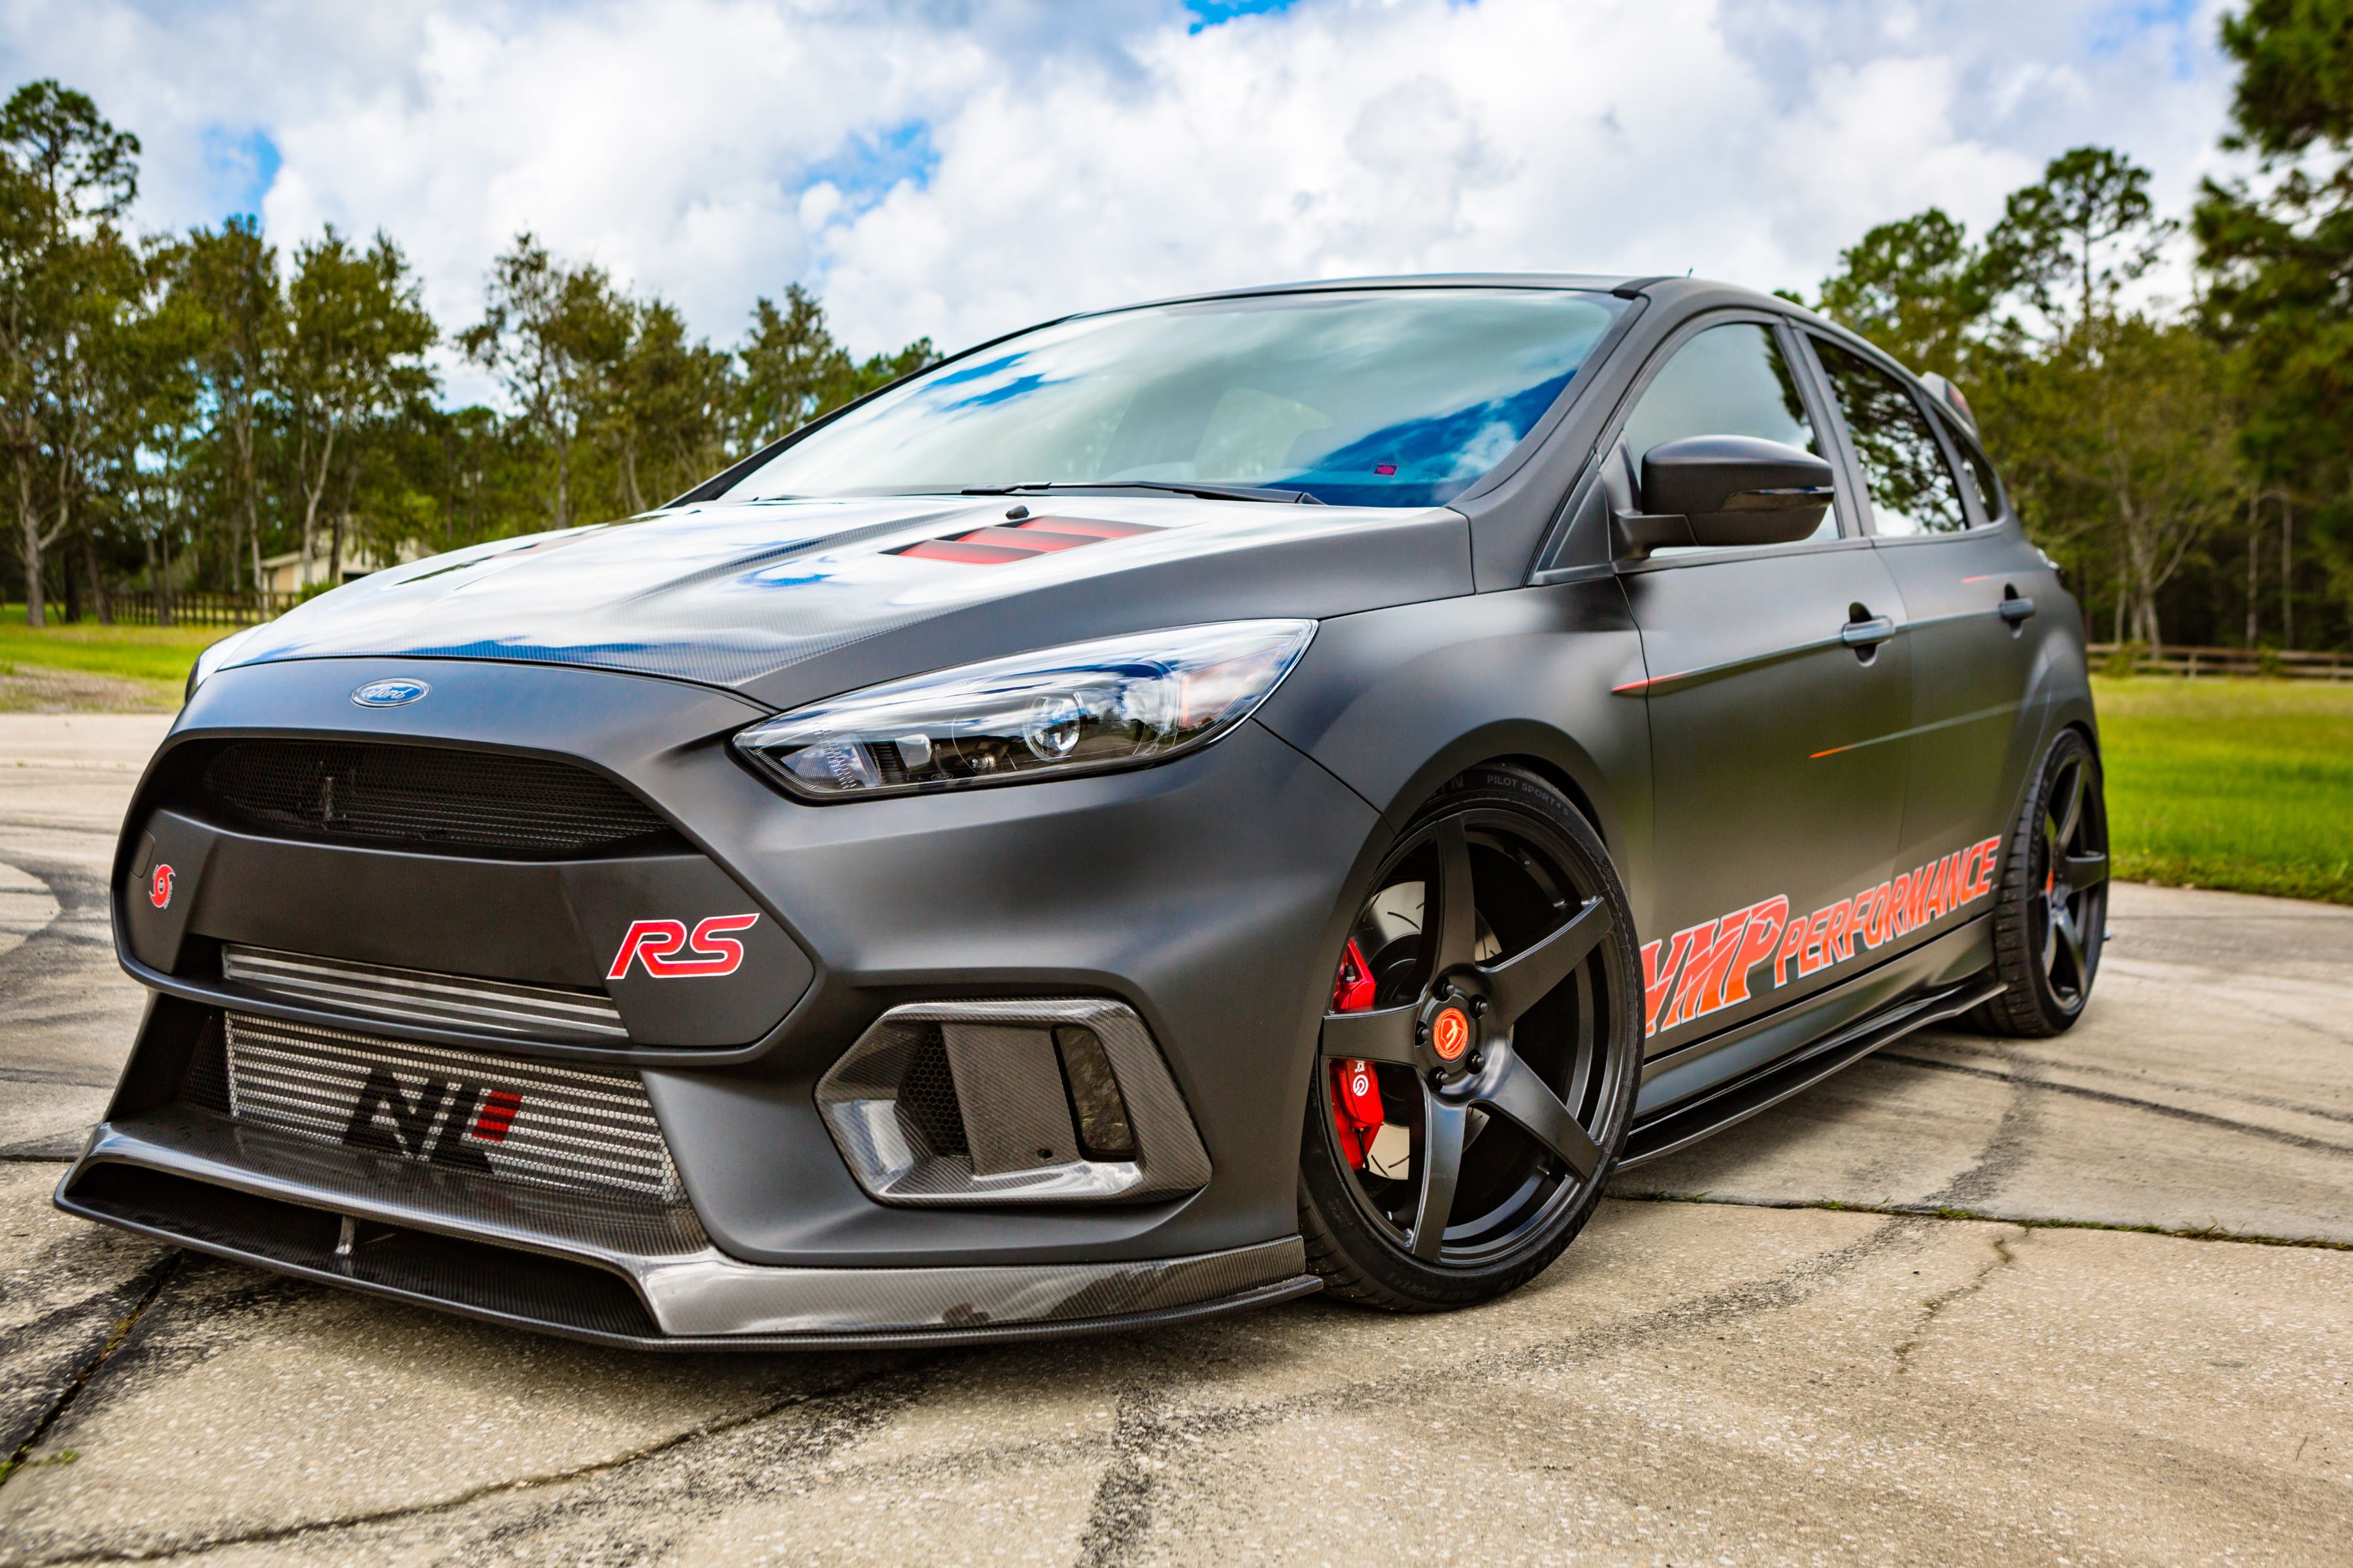 Vmp Performance Turned Ford S Hottest Hatch The Focus Rs Into An All Around Performer Dubbed Triathlete This Hot Features A